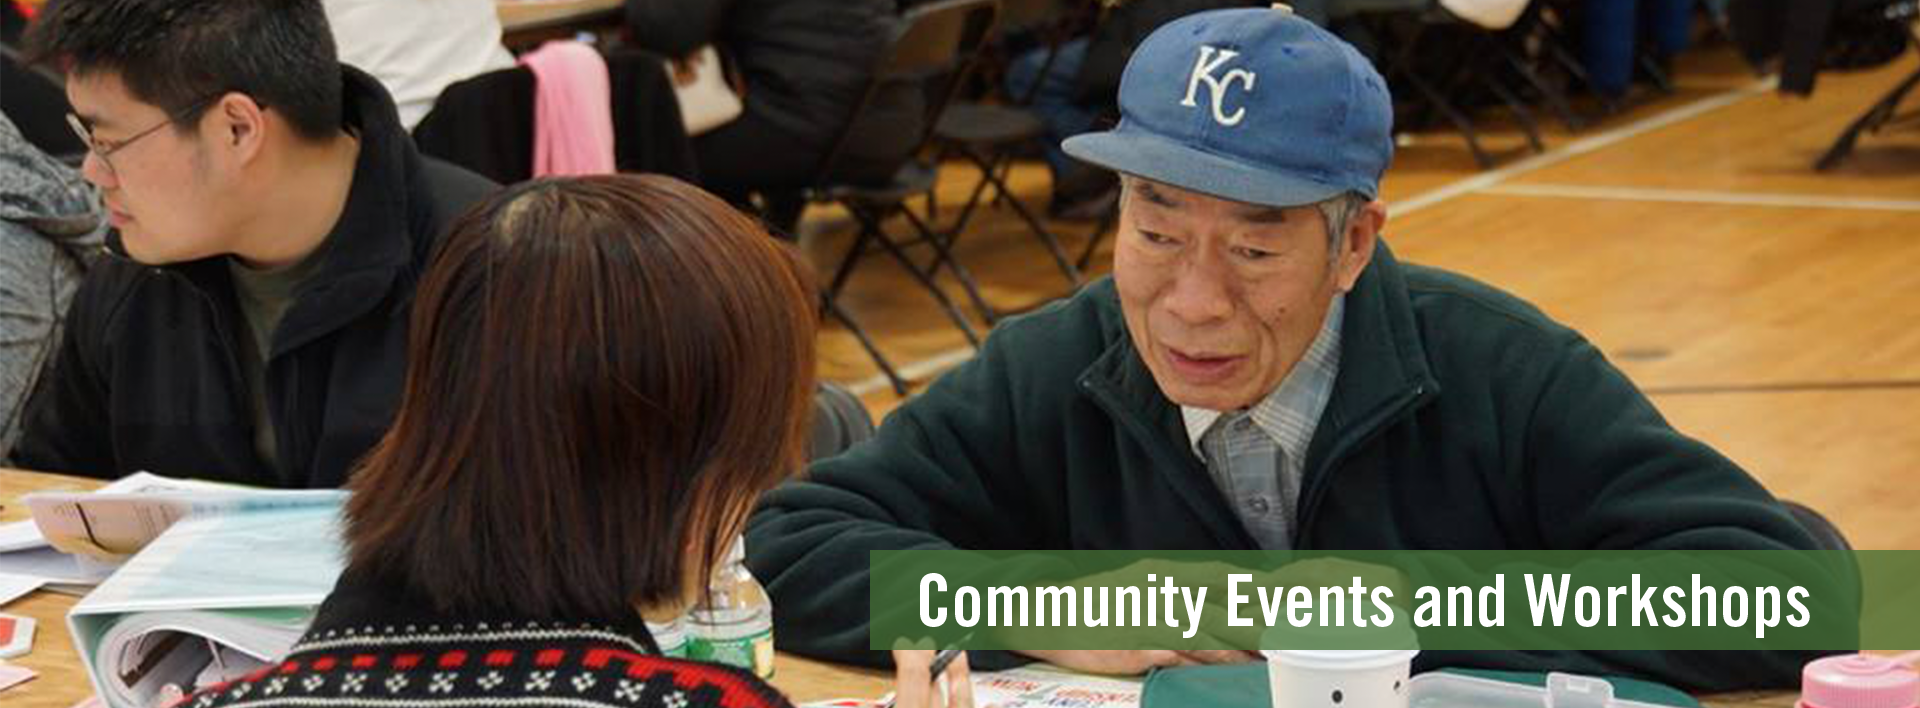 Community Events and Workshops